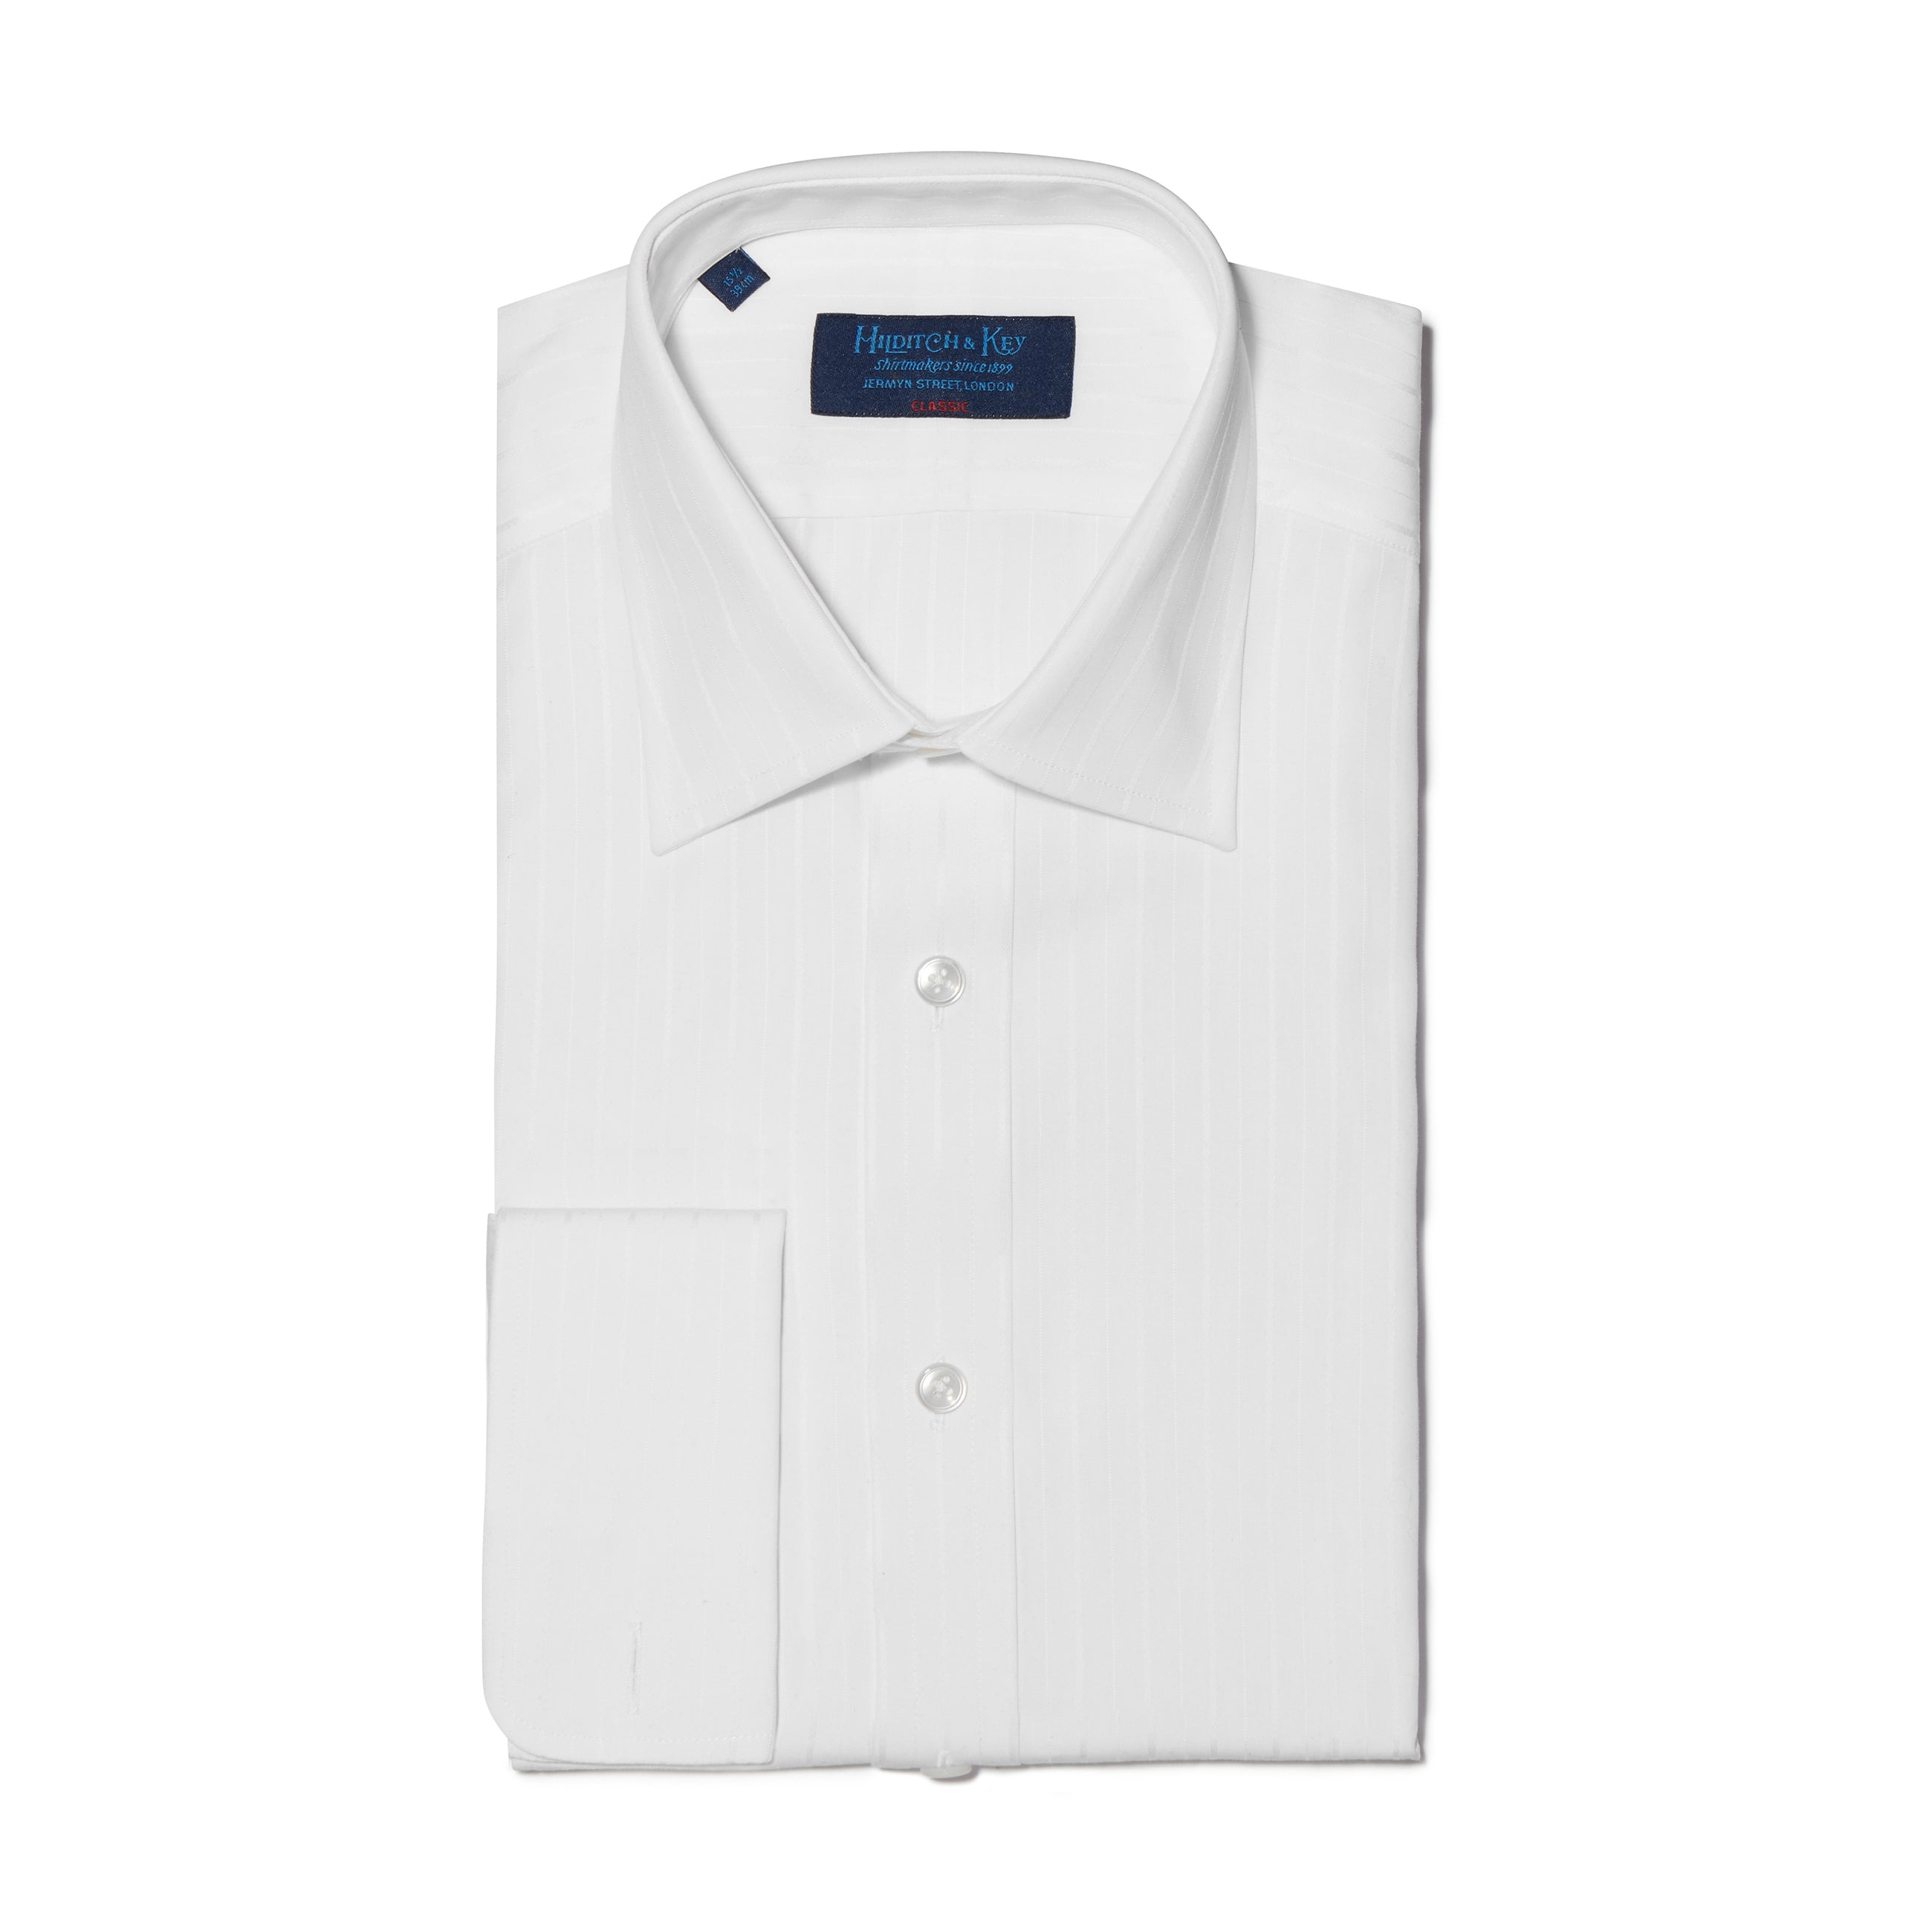 Classic Fit, Classic Collar, Double Cuff Shirt in a White Stripe White-On-White Cotton